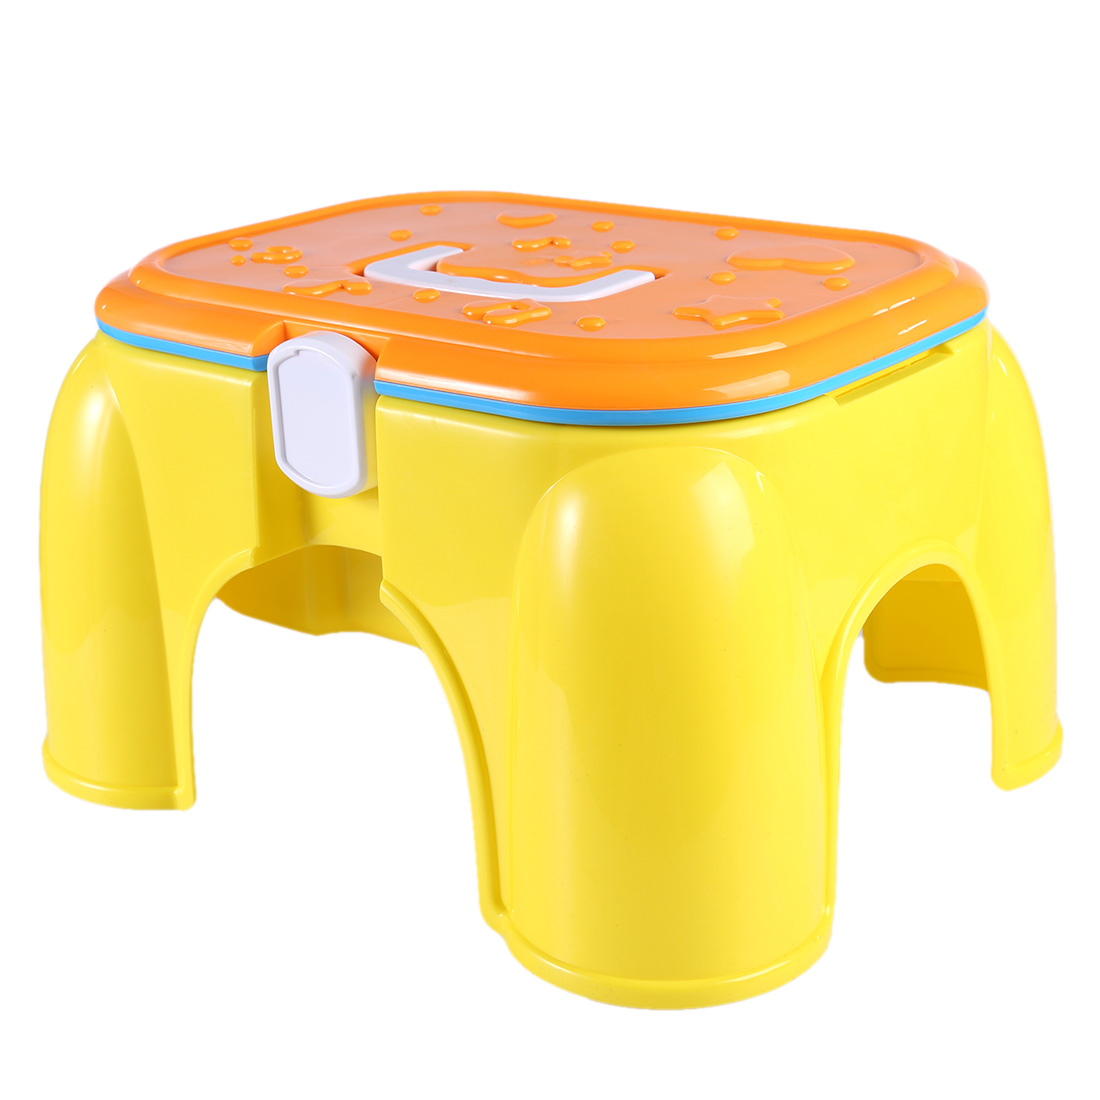 Surwish Kids Beach Toys Pretend Play with Retractable Storage Chair Educational Toys